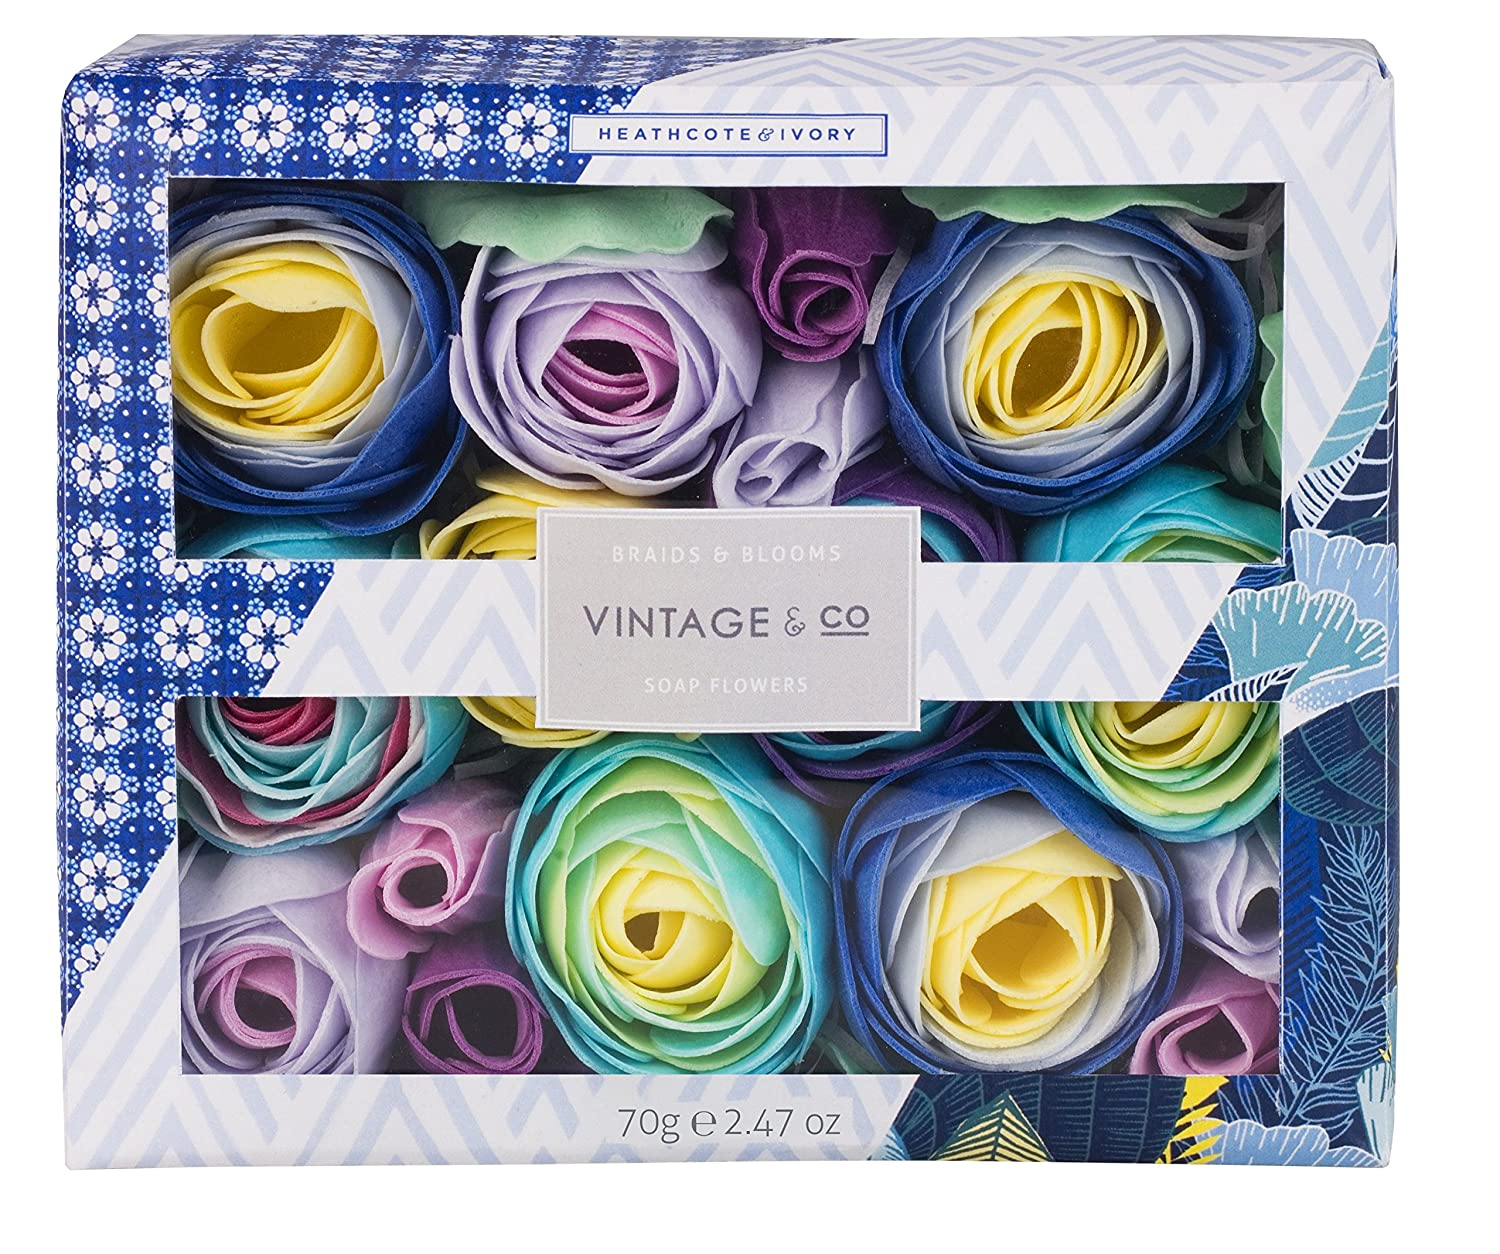 Vintage & Co Braids and Blooms Soap Flowers, 70 g Heathcote & Ivory FG5813